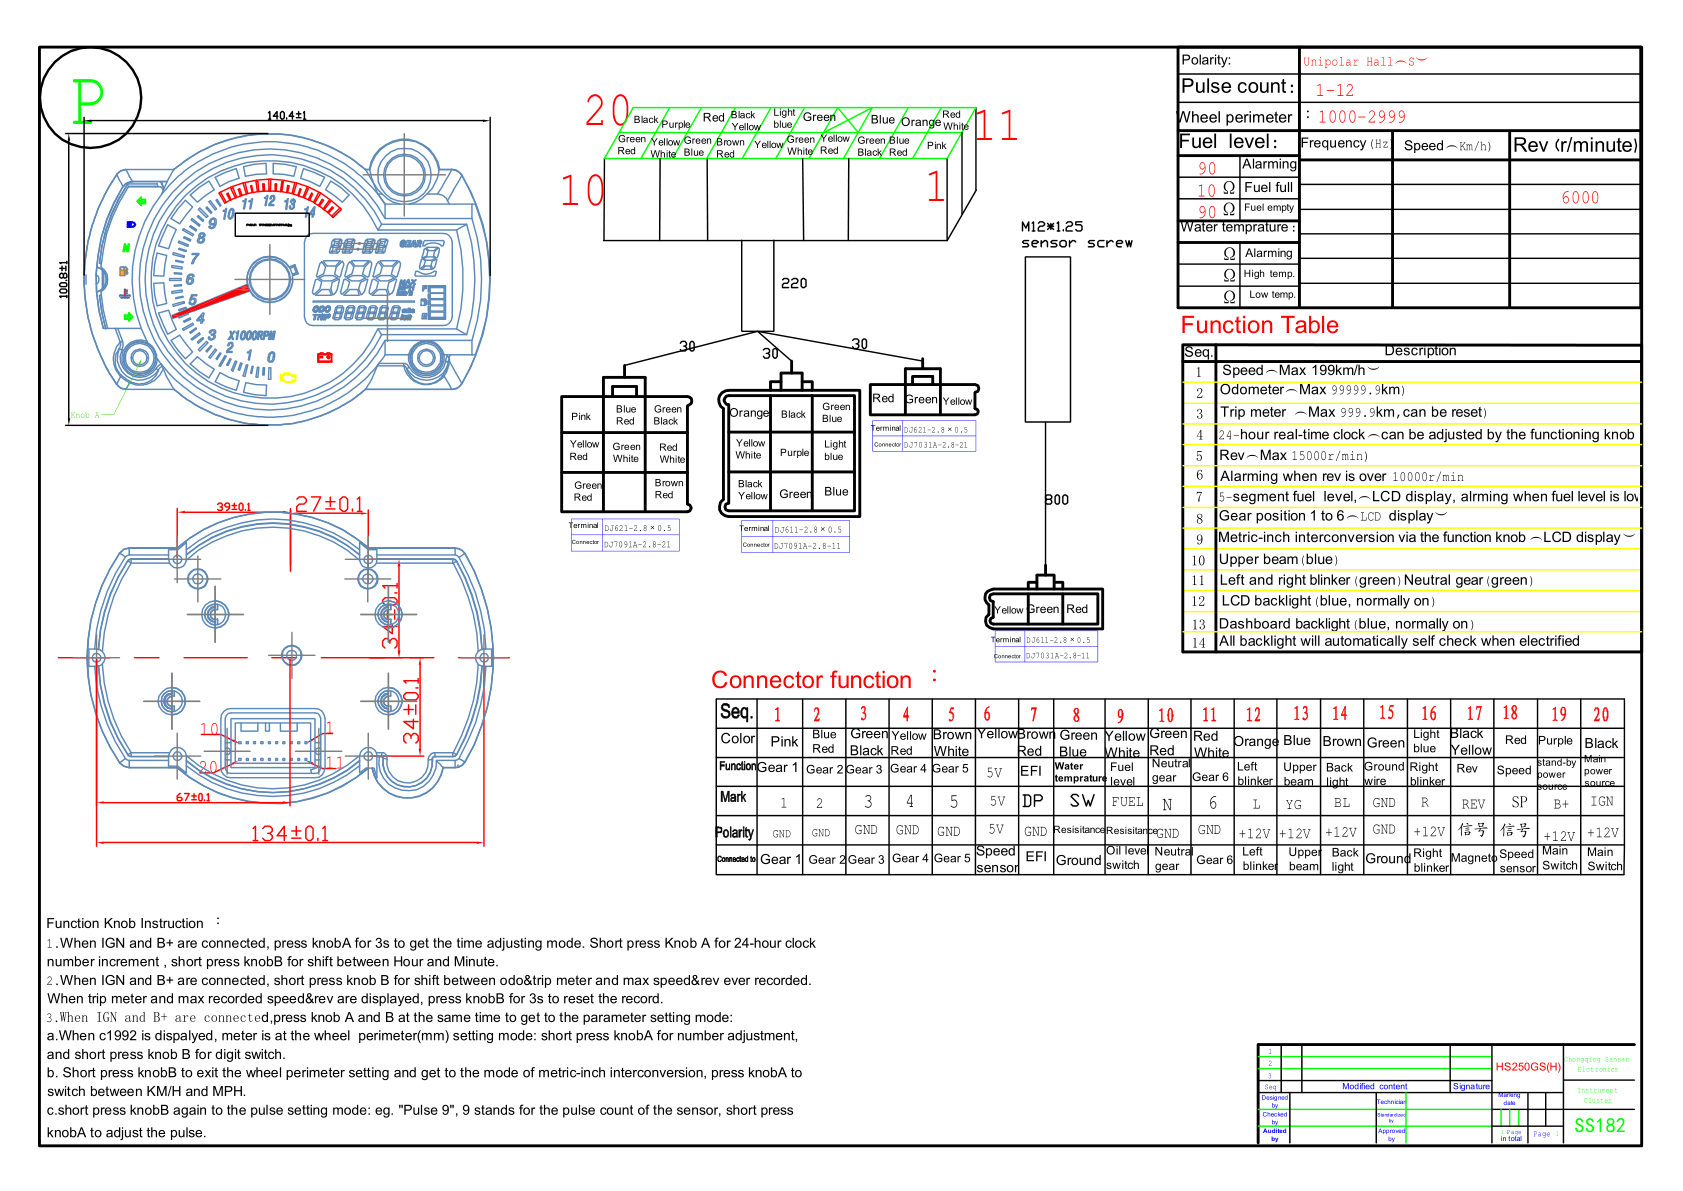 Zx14 Wiring Diagram Great Design Of 2006 Zx 14 Headlight Koso Circuit Maker 2008 7 Pin Harness